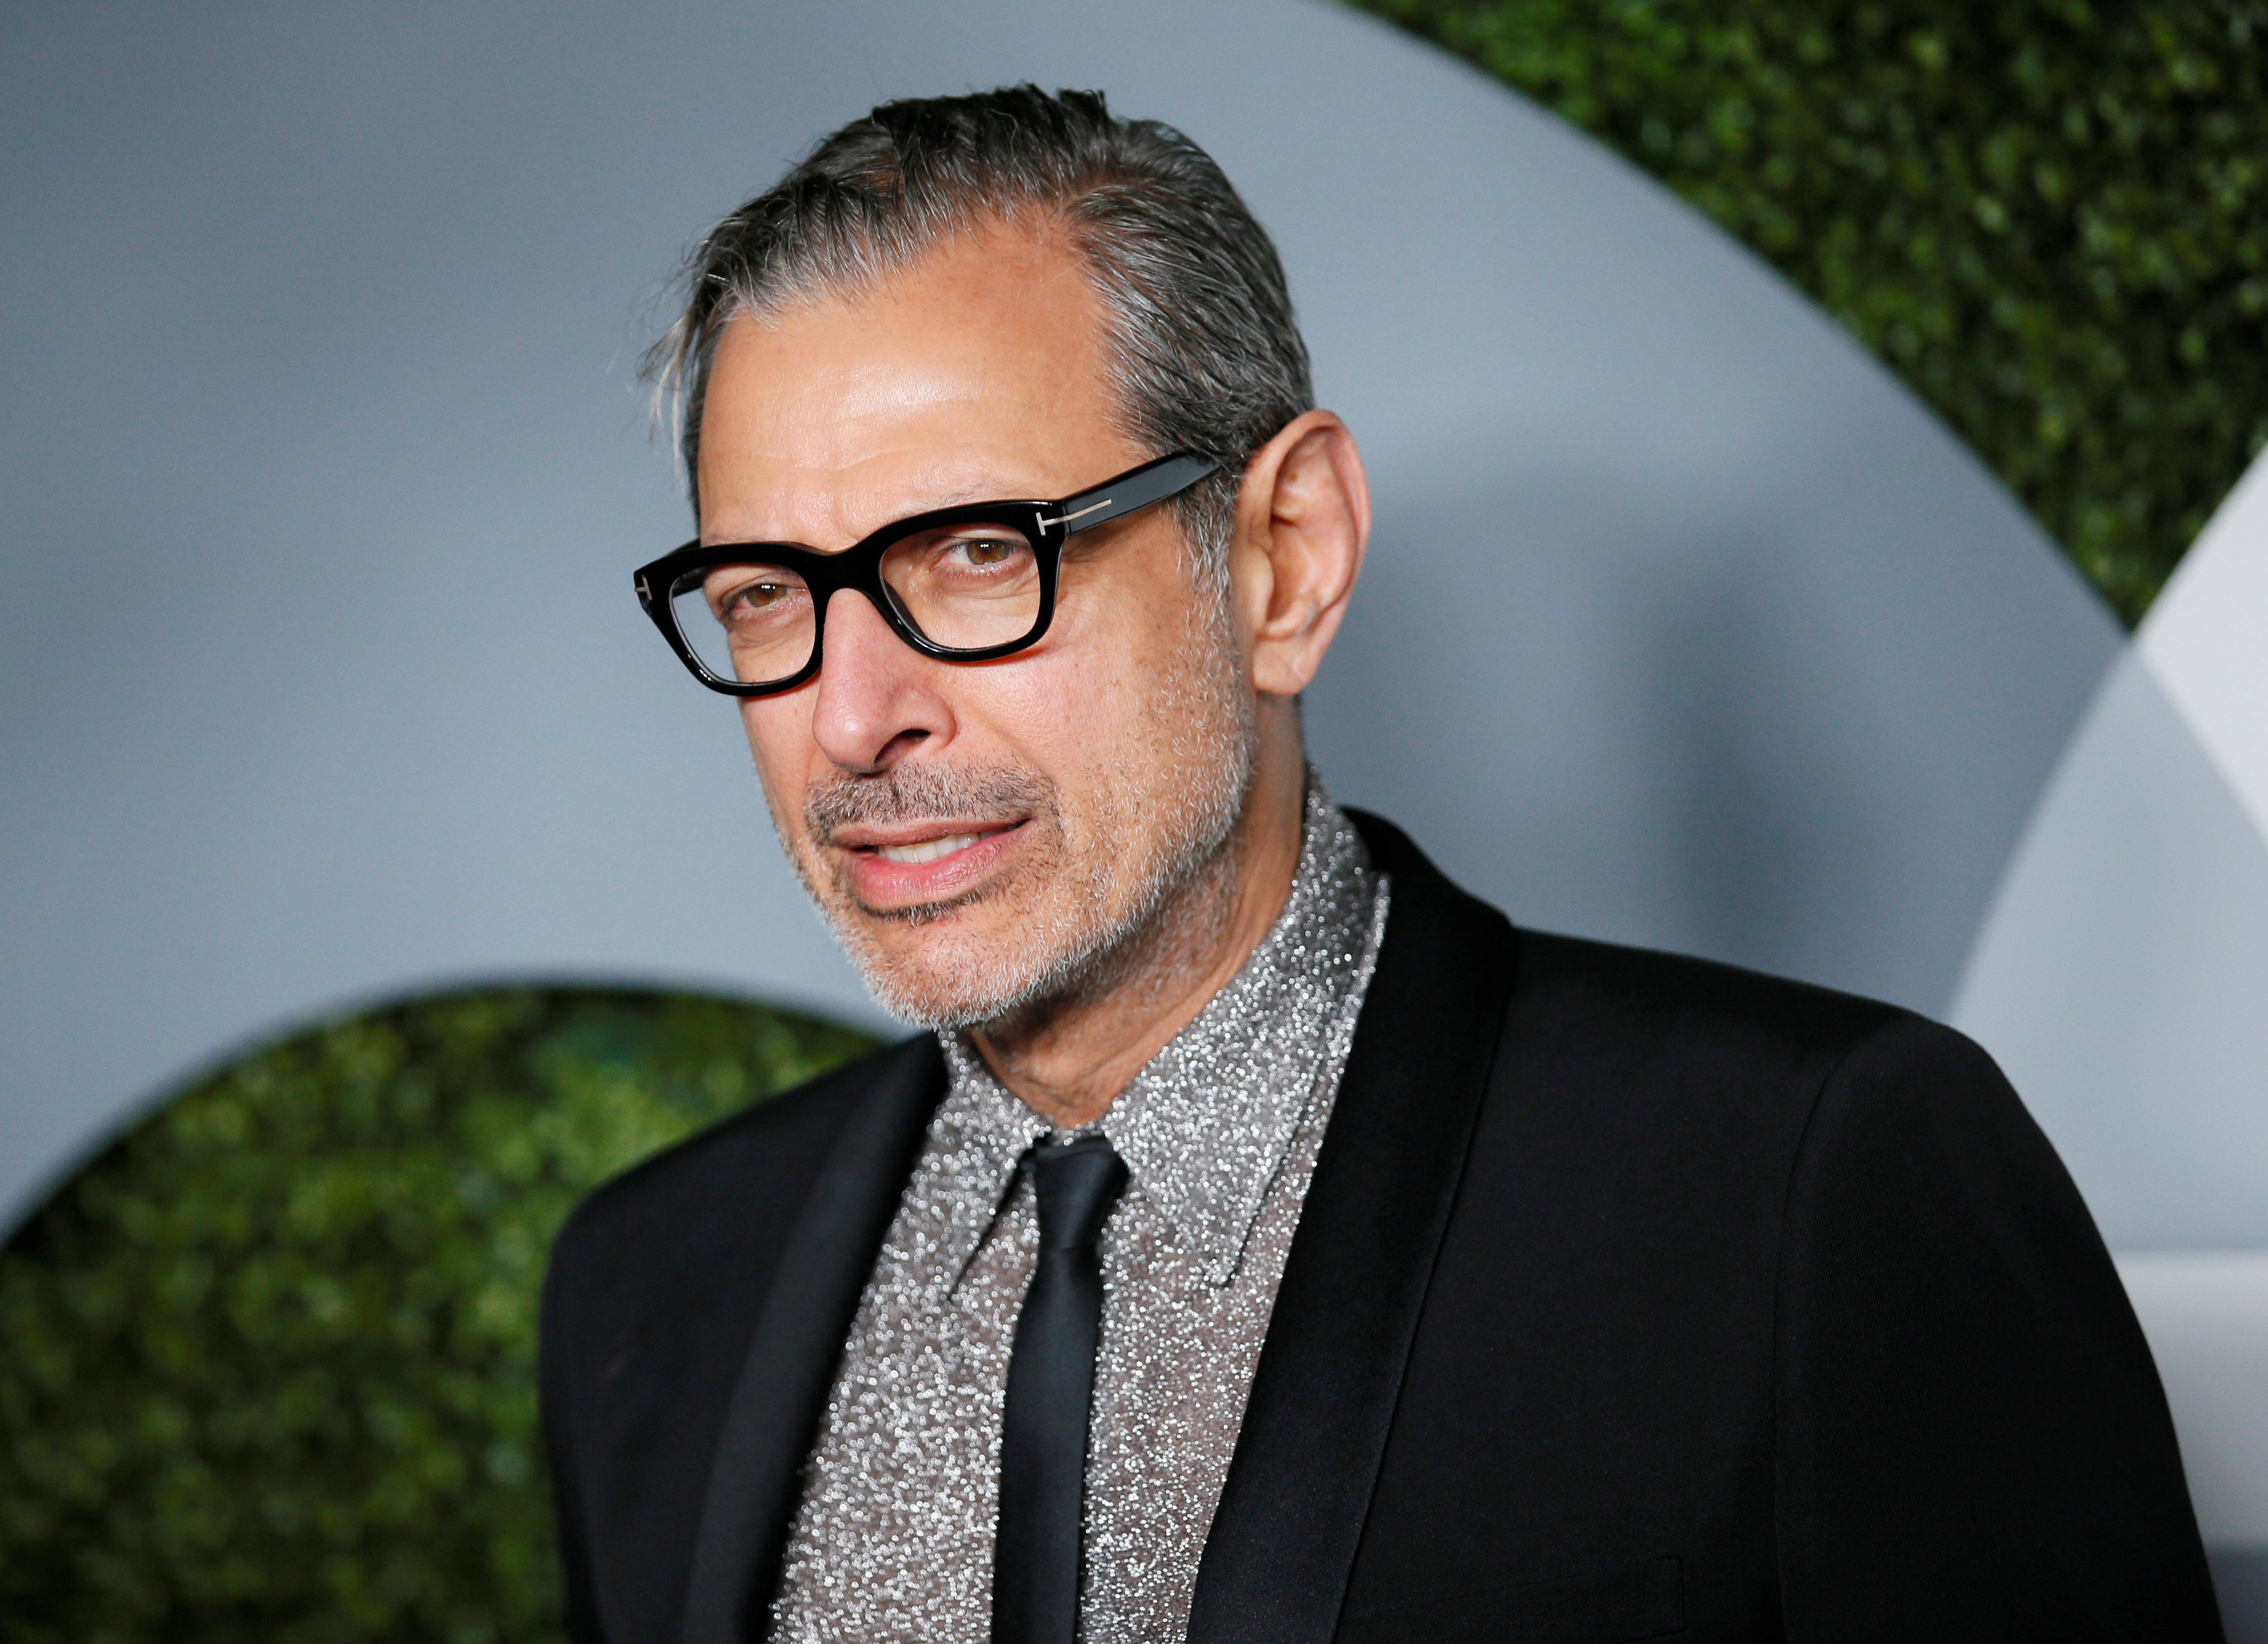 Jeff Goldblum To Reprise Role In \u0027Jurassic World\u0027 Sequel | HuffPost